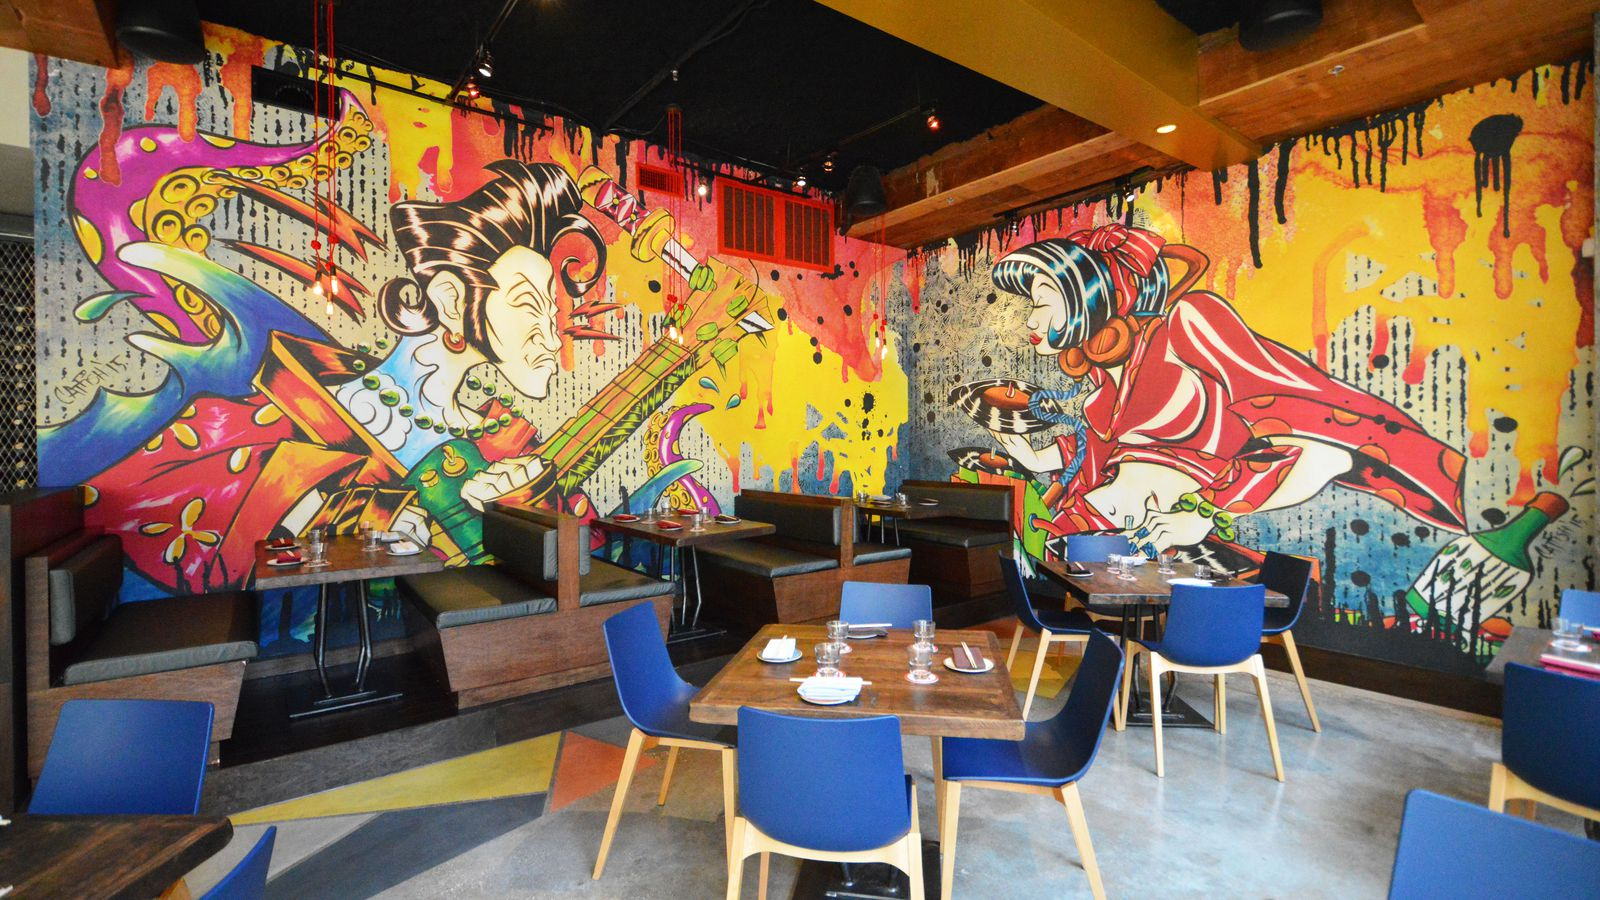 Izakaya splashes into midtown look inside and see the